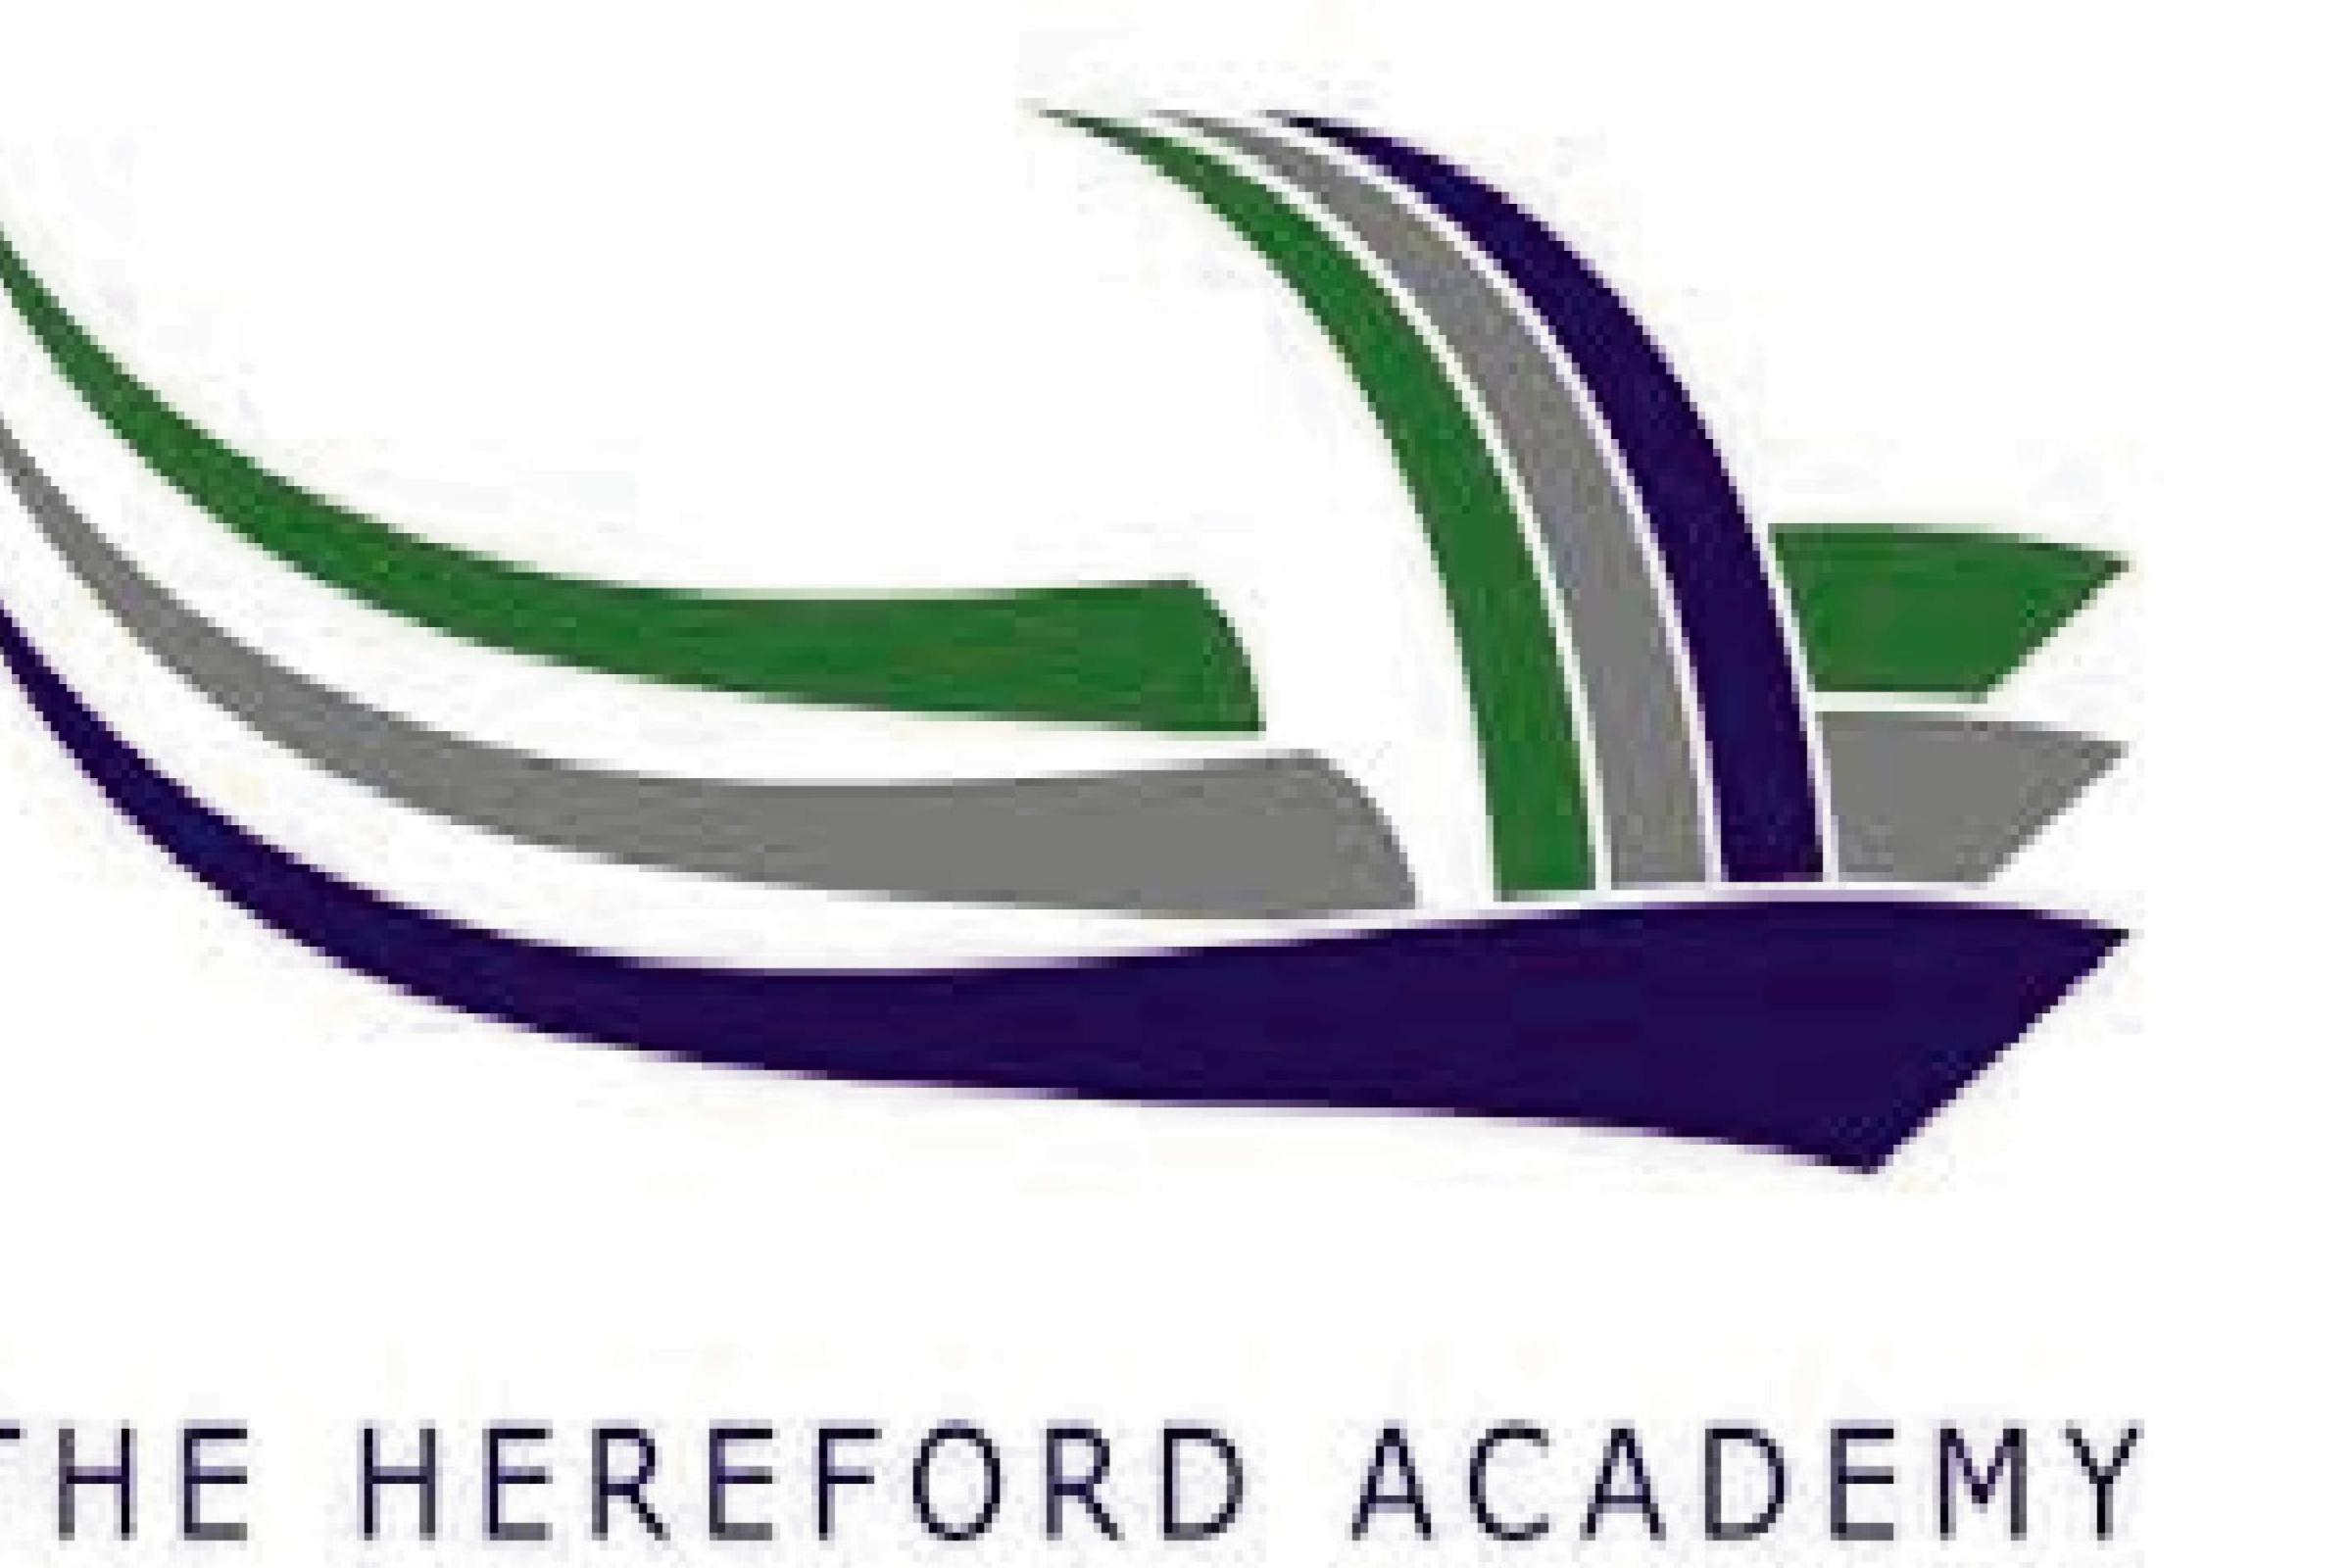 Hereford Academy's community learning centre will be re-locating.